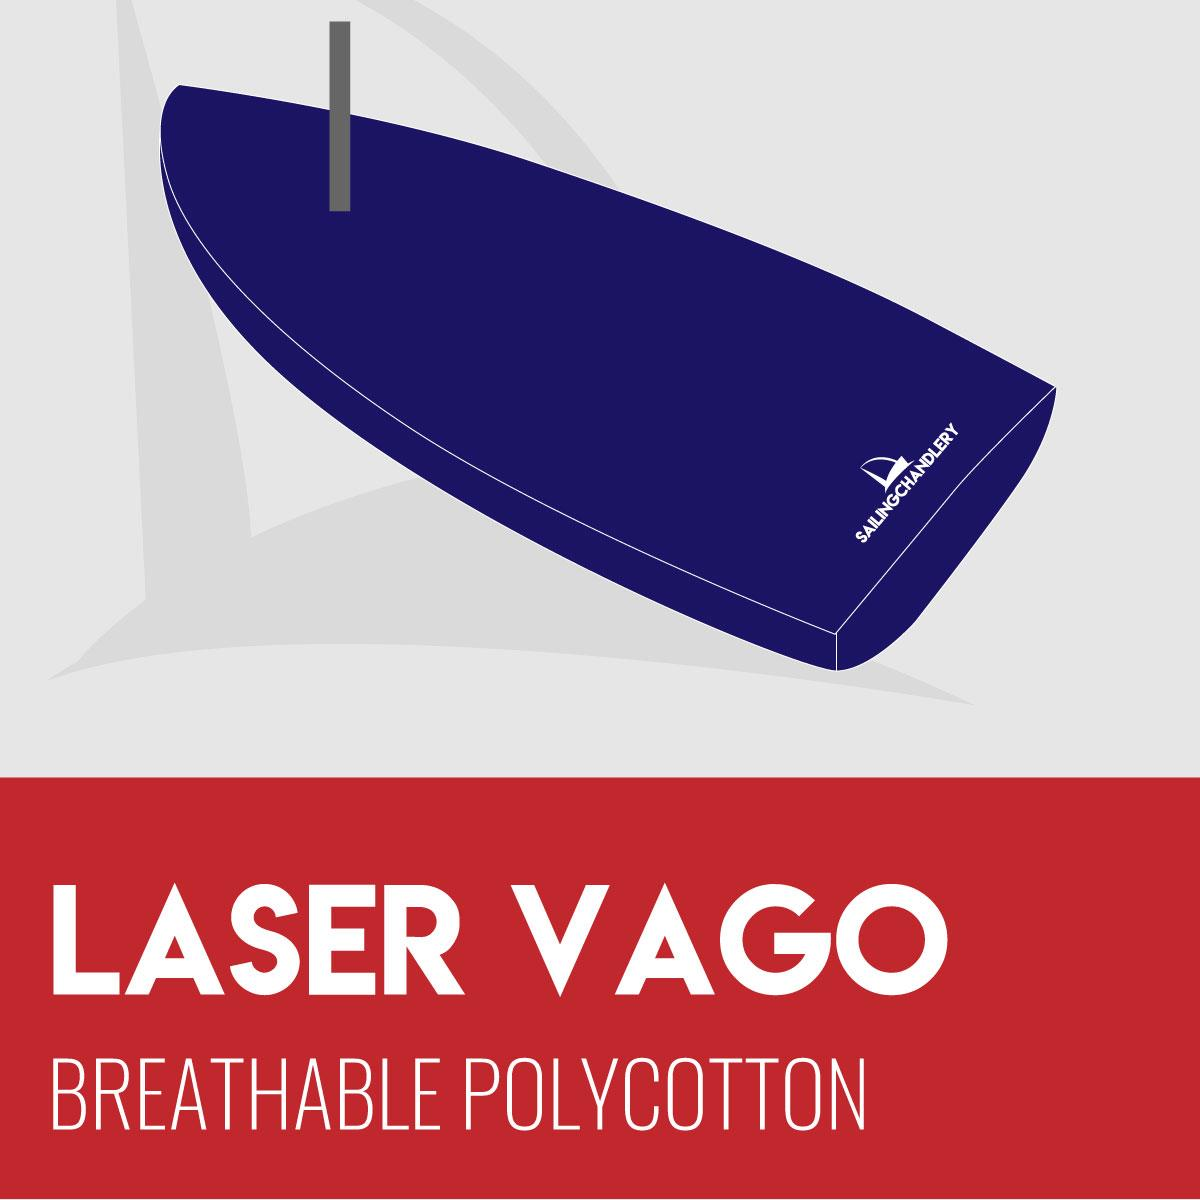 Laser Vago Flat Boat Cover - Breathable Polycotton